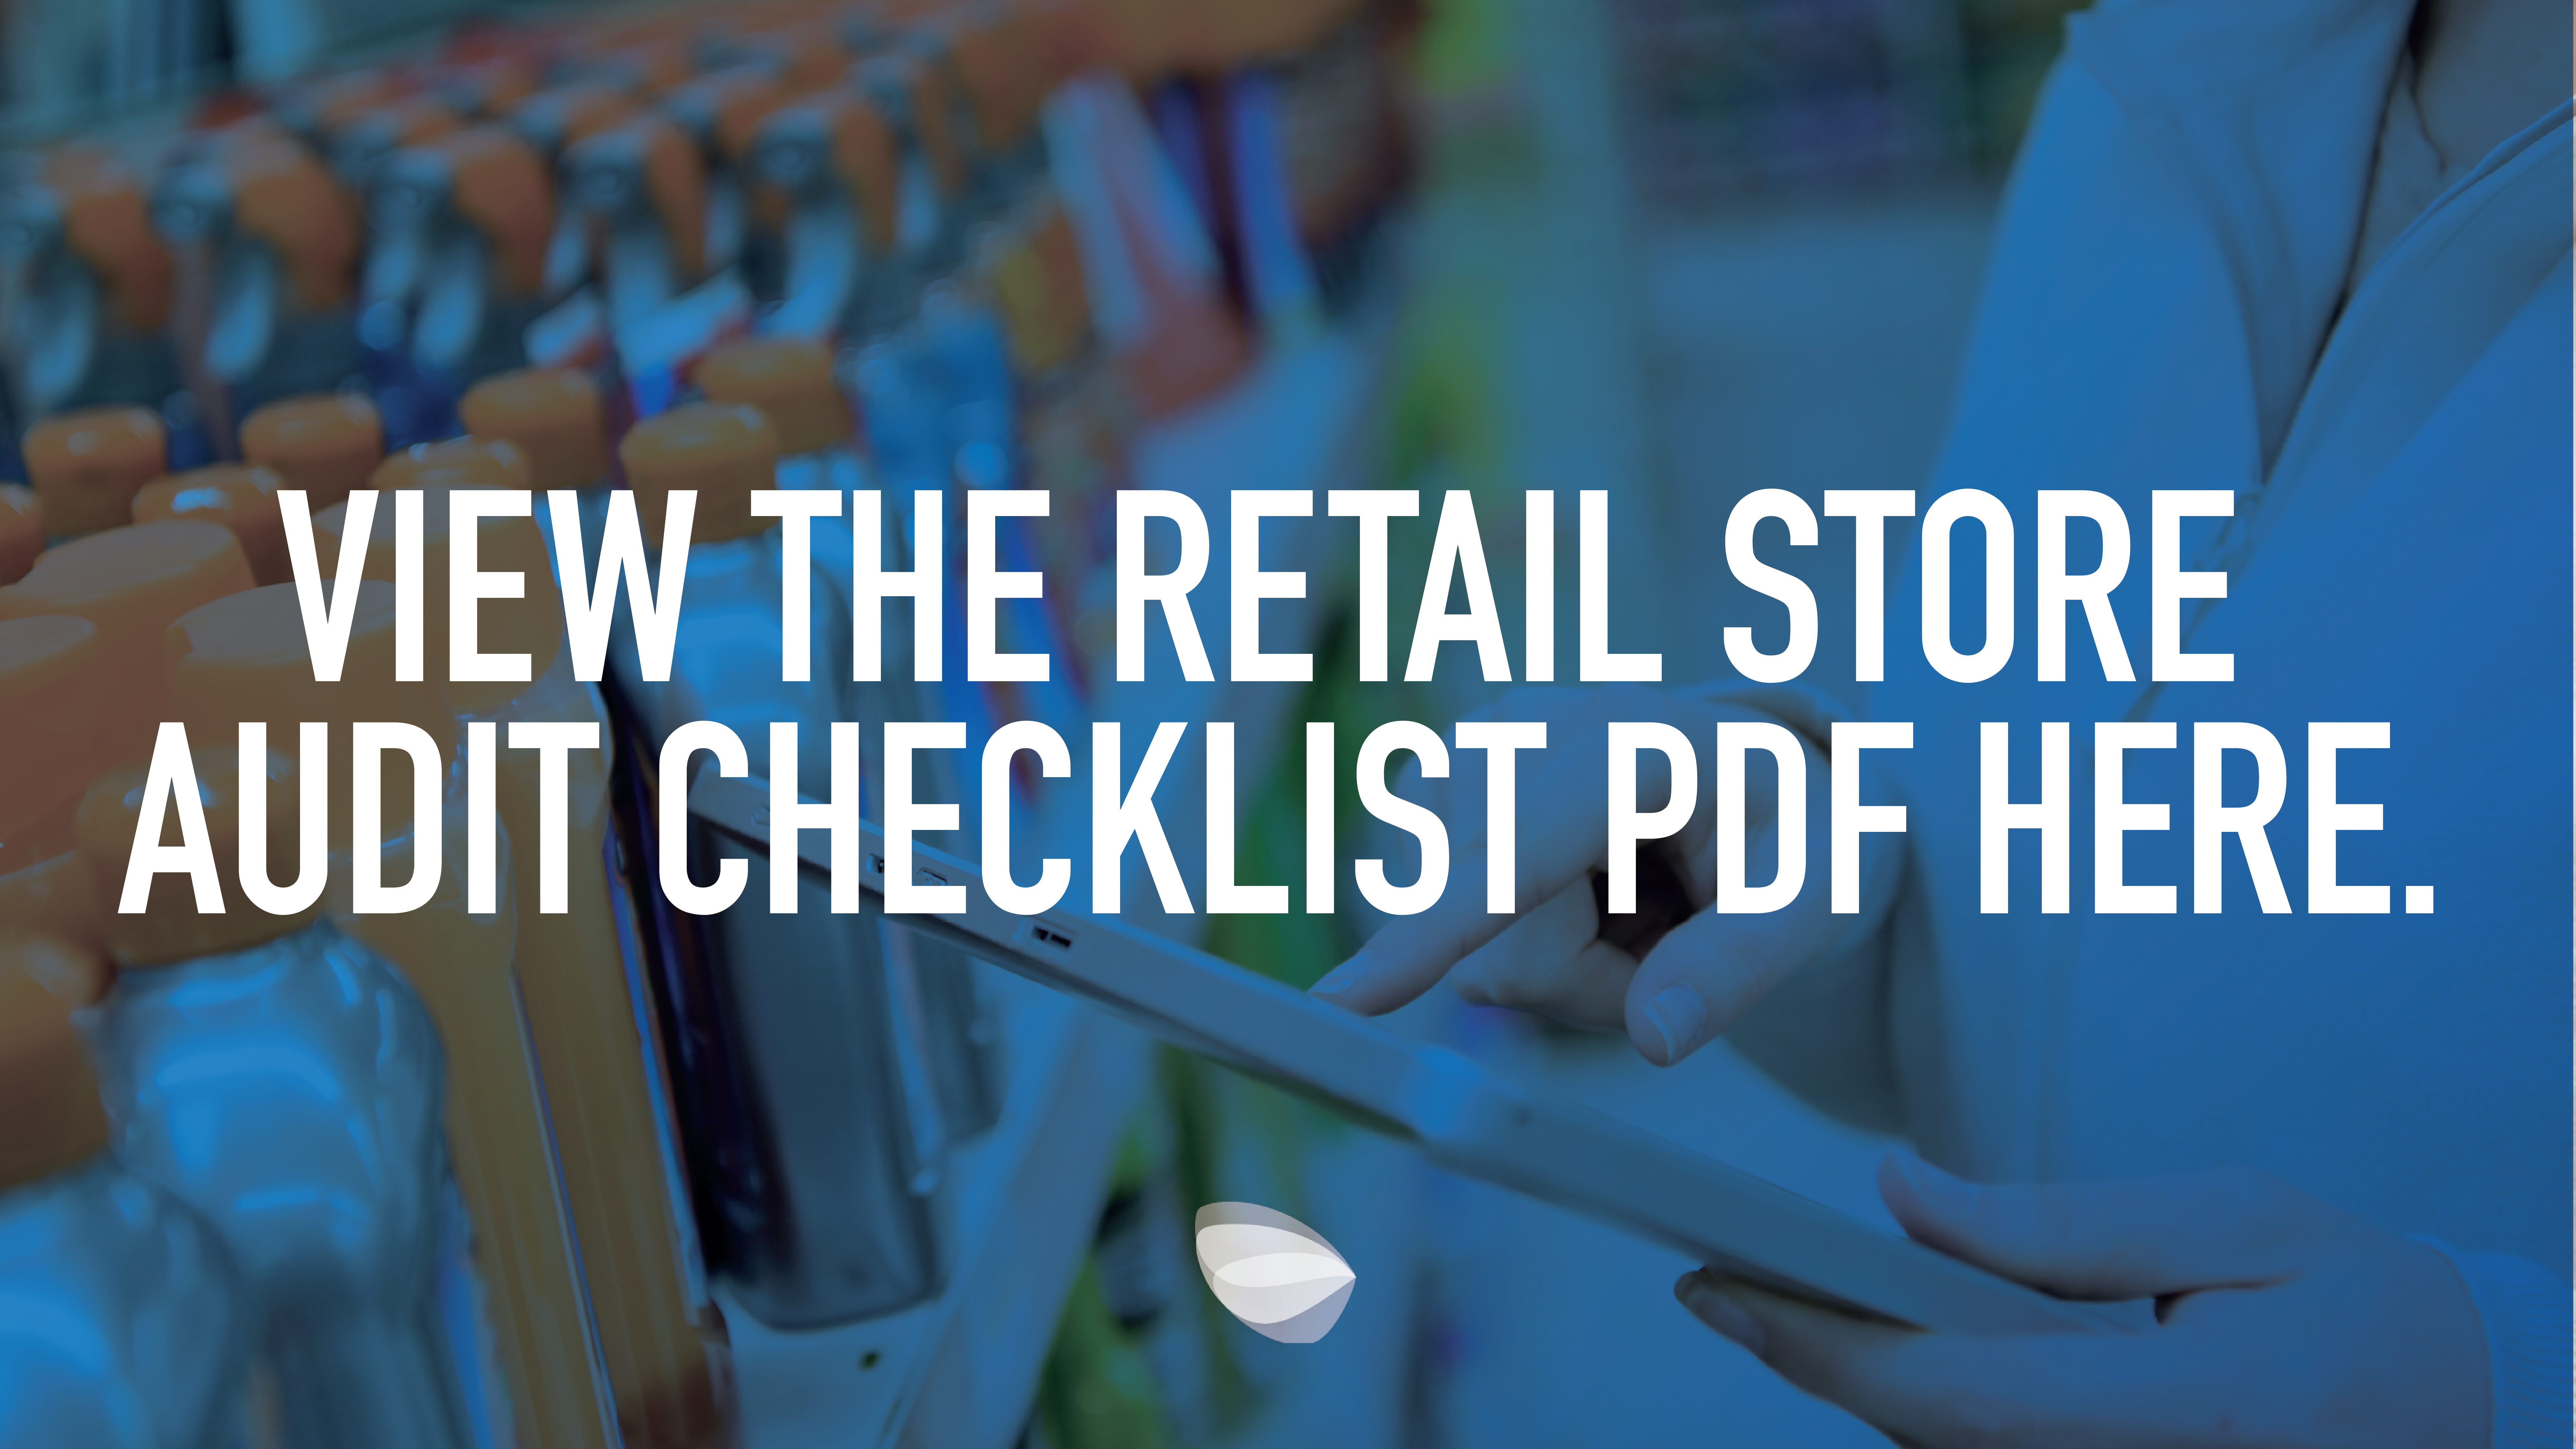 How To Build Your Retail Store Audit Checklist And Process